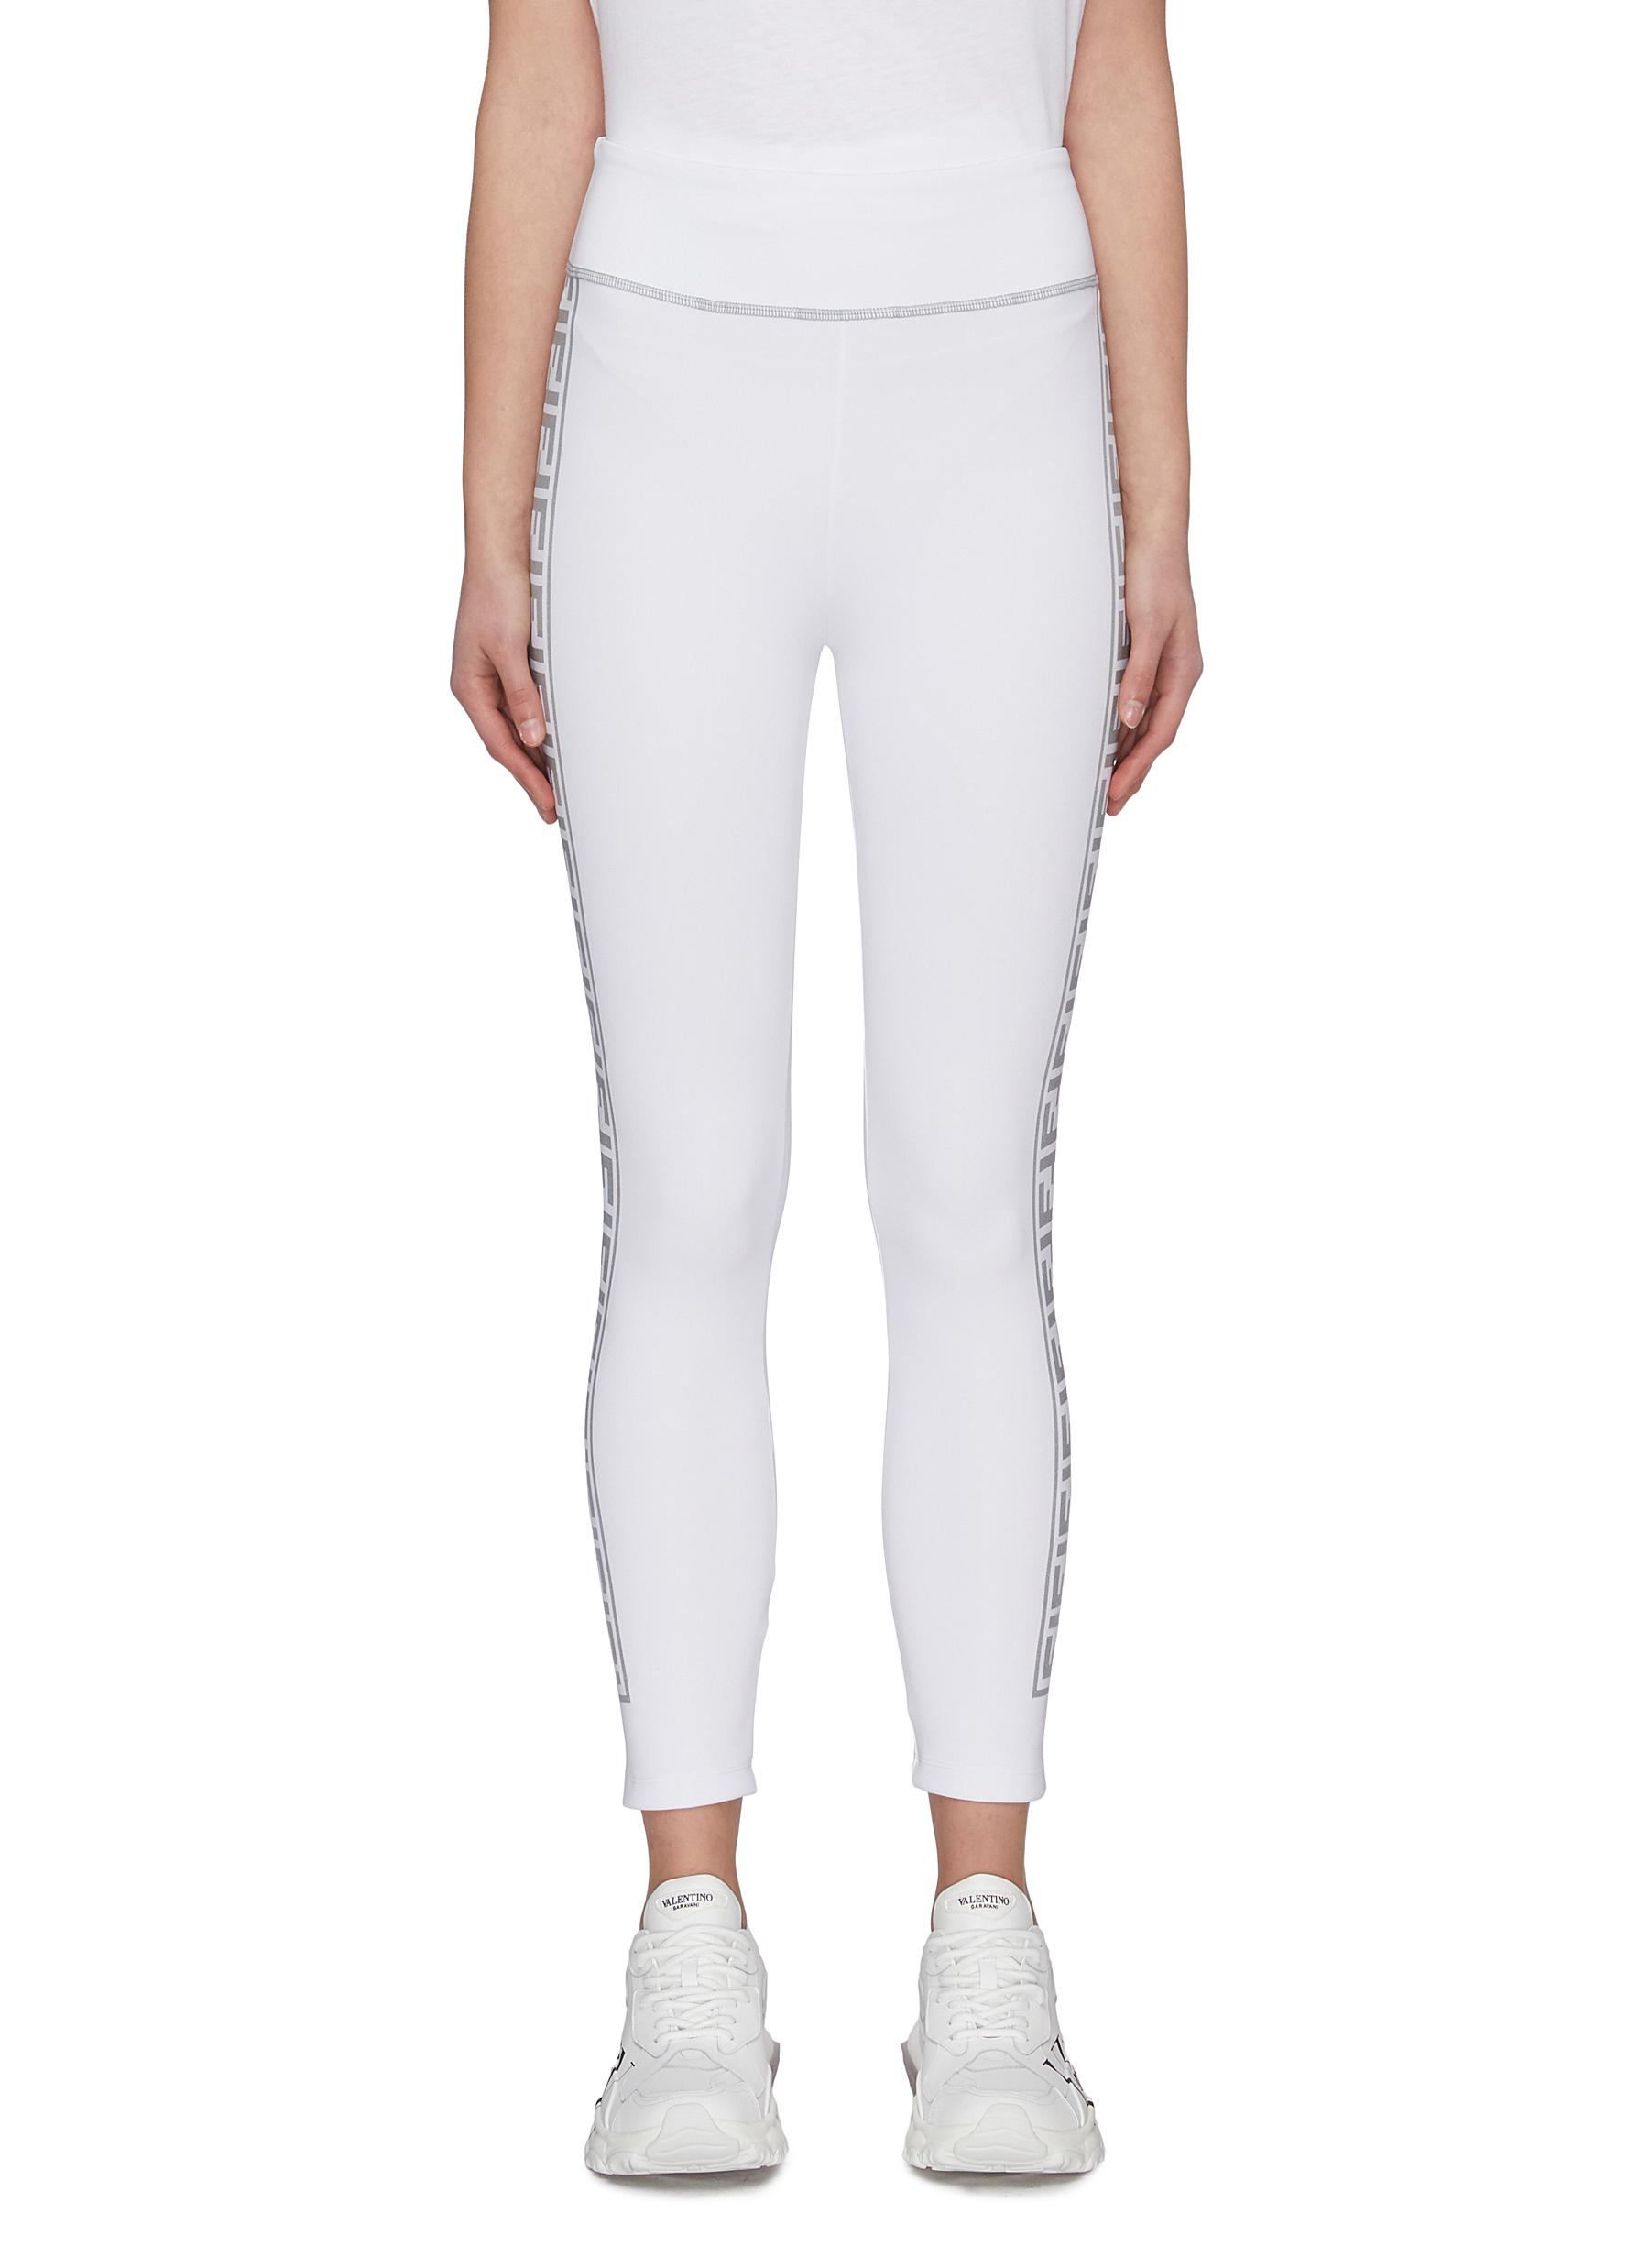 Buy Fendi Sport Pants & Shorts 'Fendirama' logo webbing leggings